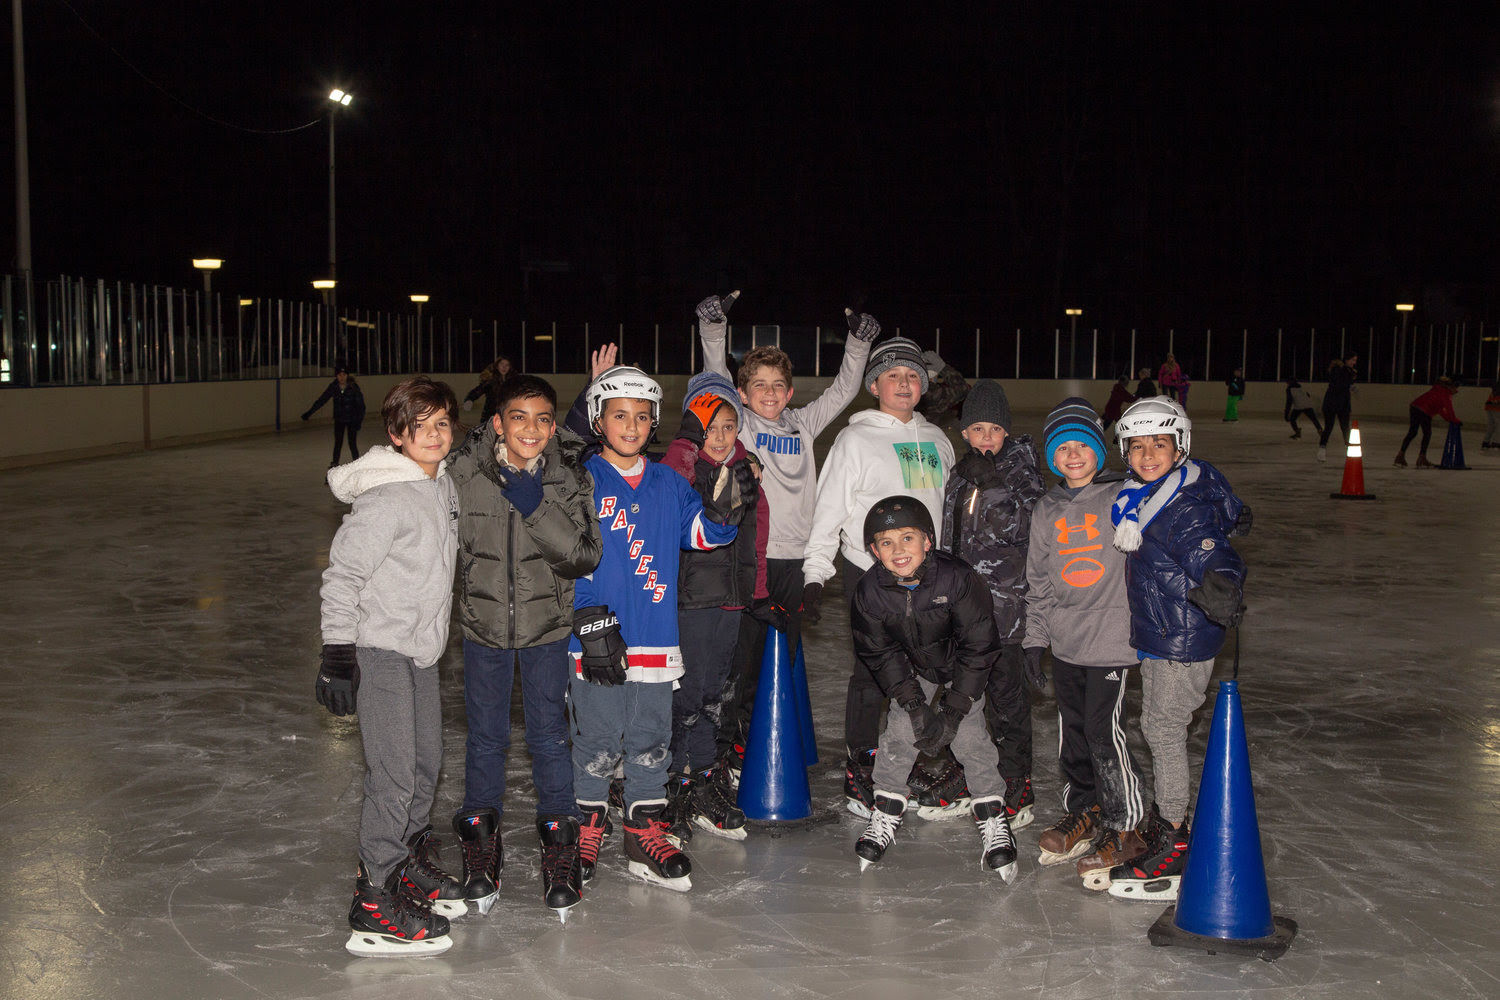 On the Grant Park ice rink at the Chabad of Hewlett's Hanukkah on Ice from left Johnathan, Tomir, Nathan, Roy, Justin, Orr, Shaan, Stefano, Ari and Merrick.